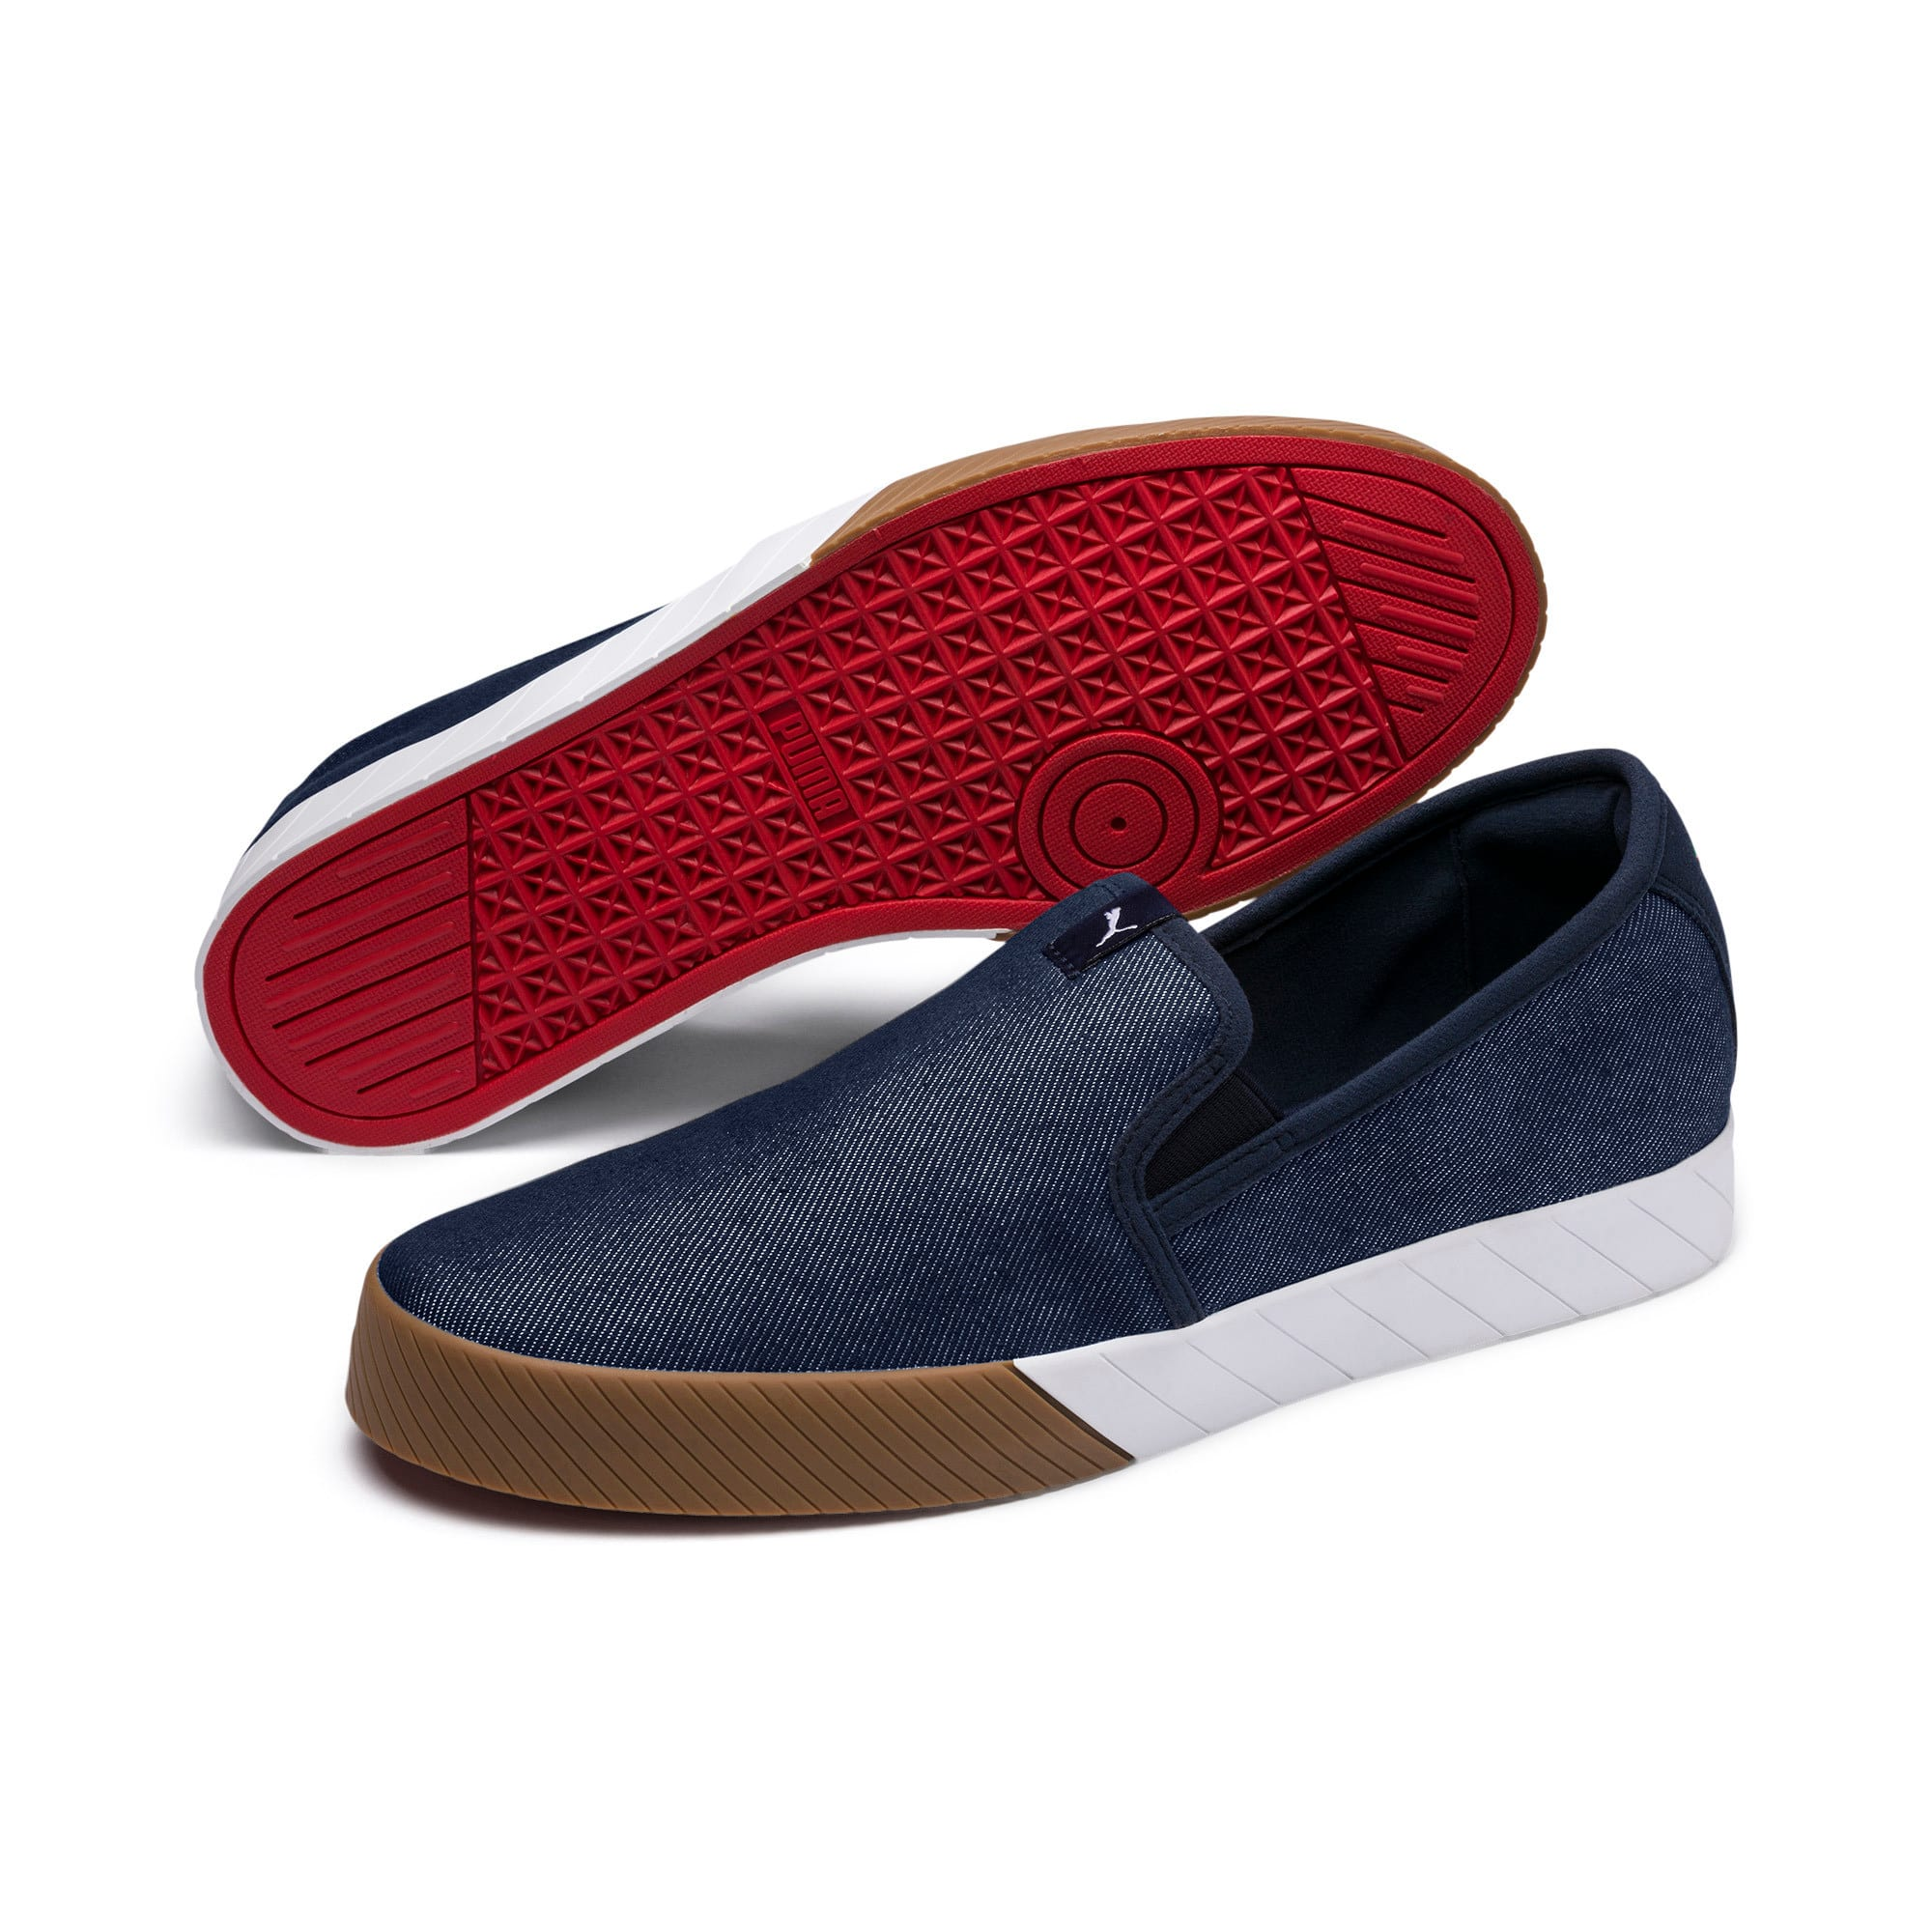 Thumbnail 5 of Scuderia Ferrari Men's Slip-On Track Shoes, Peacoat-Peacoat, medium